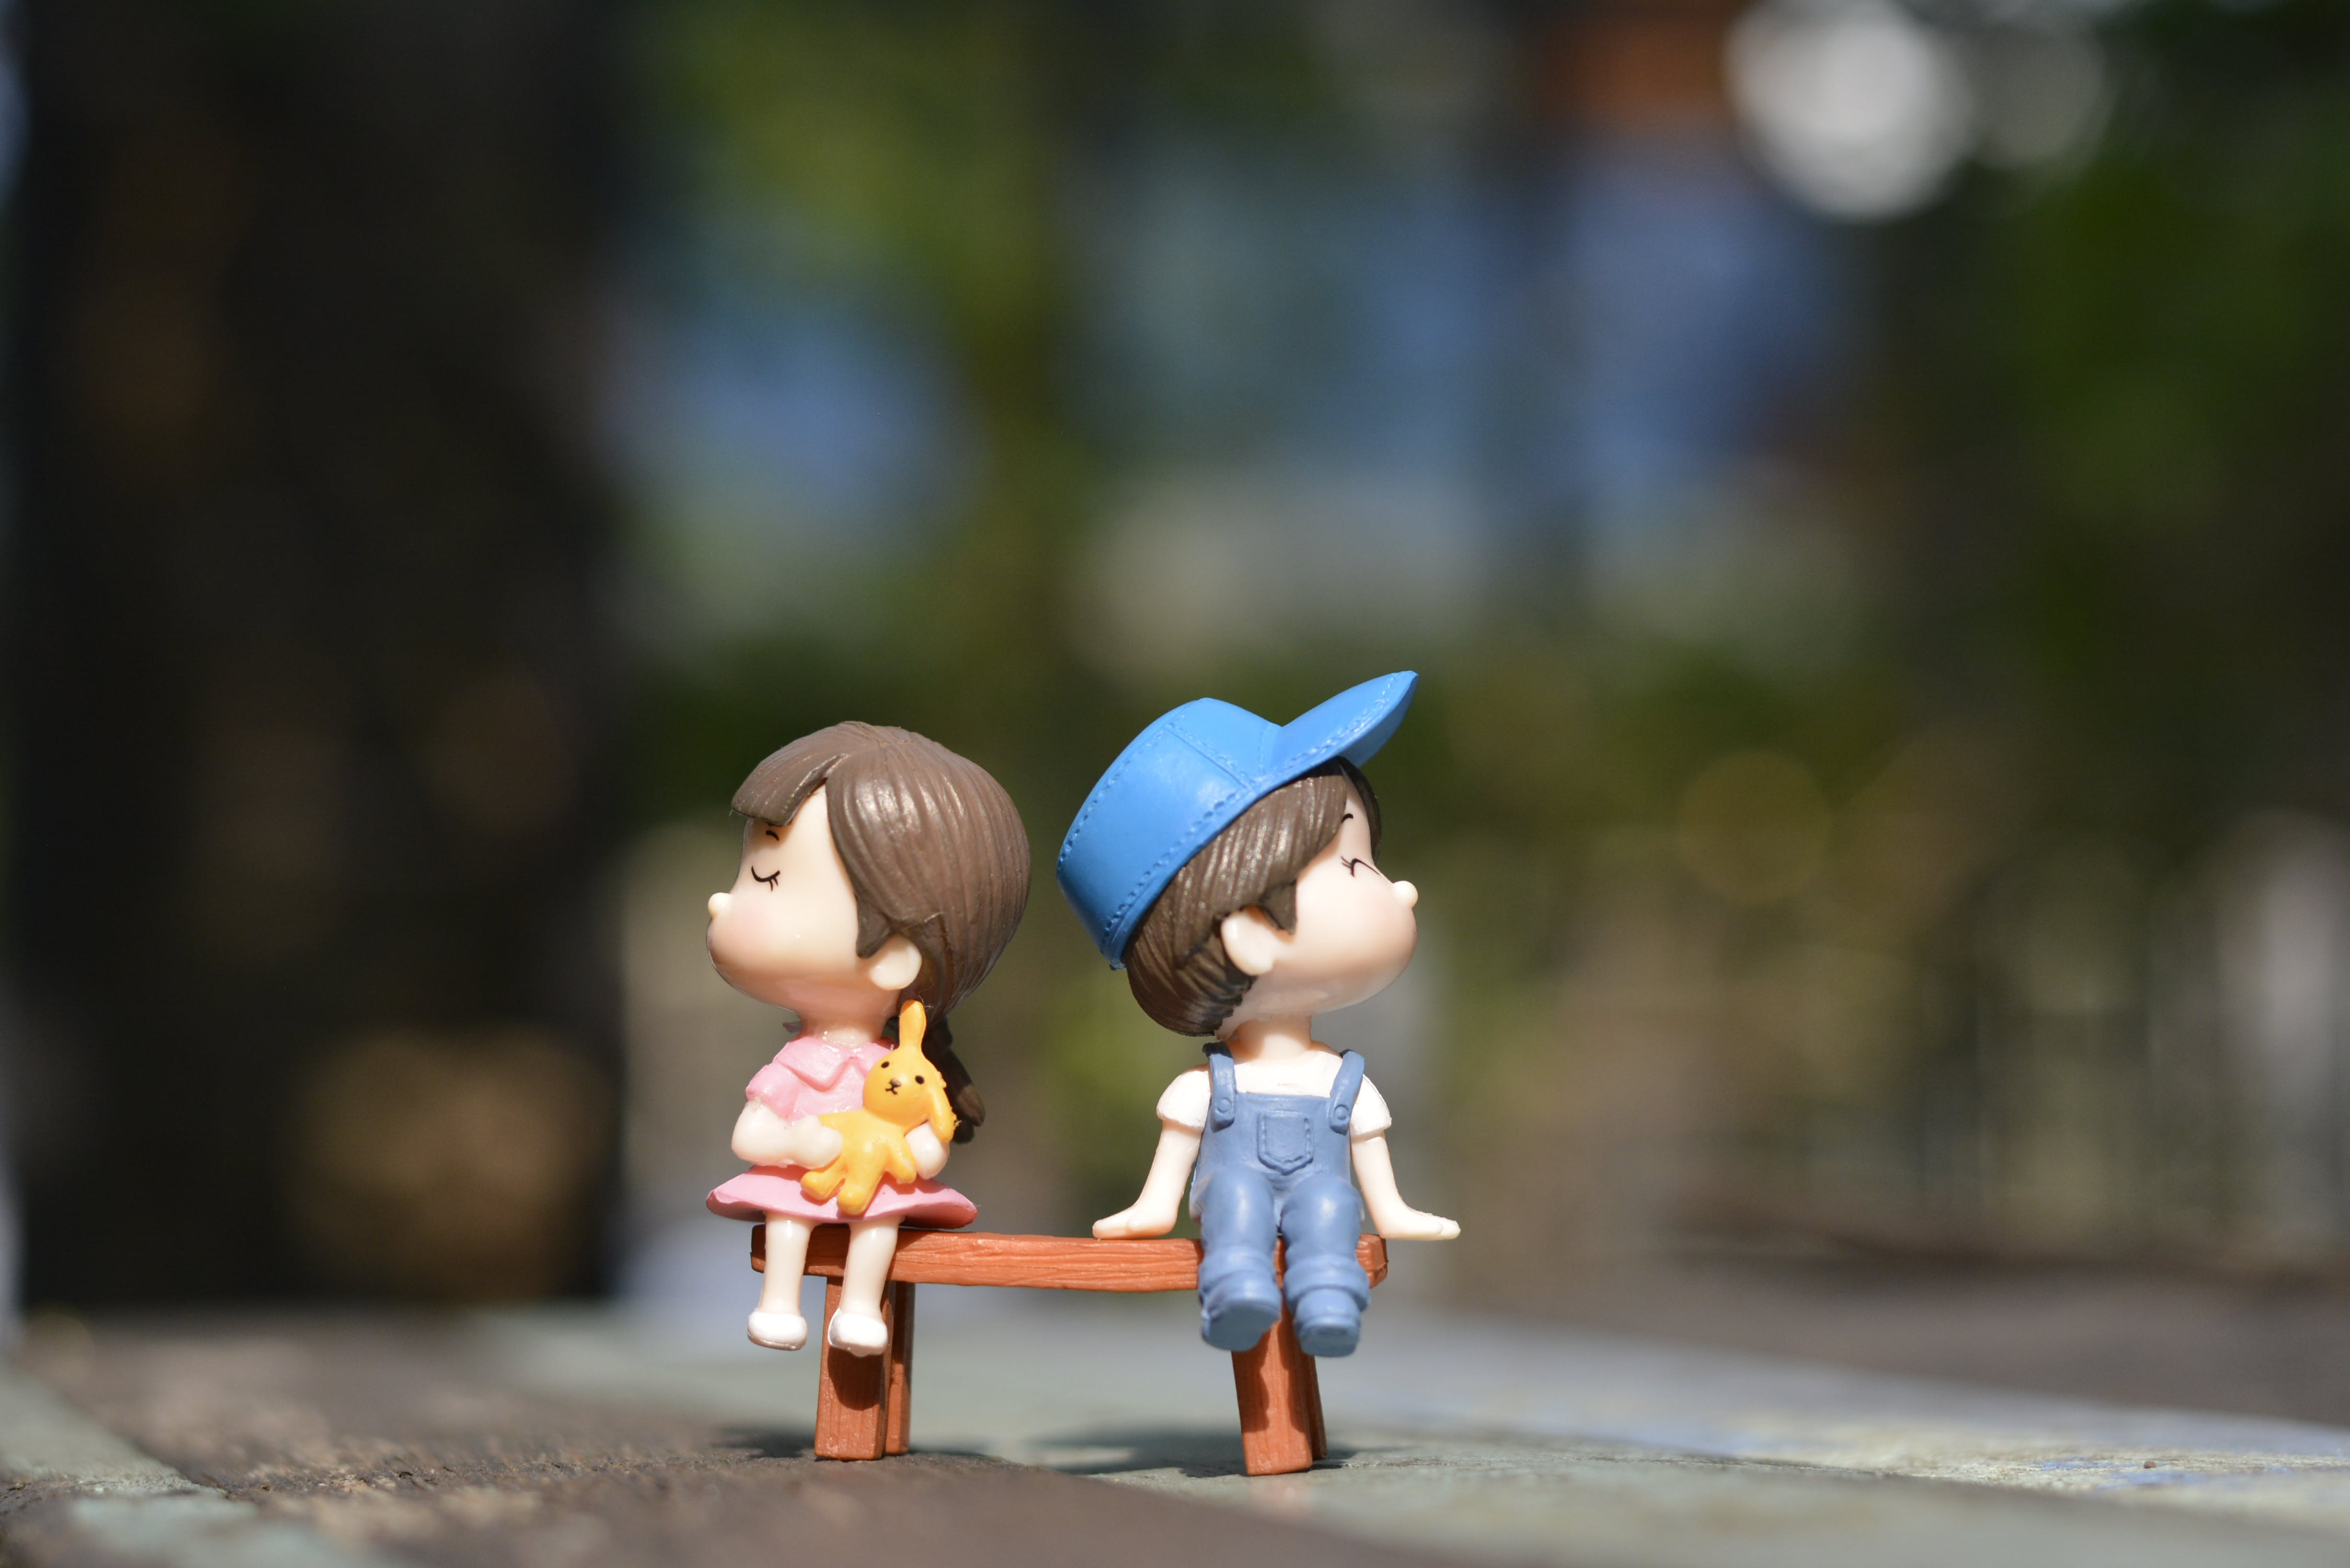 Boy and Girl Sitting on Bench Toy